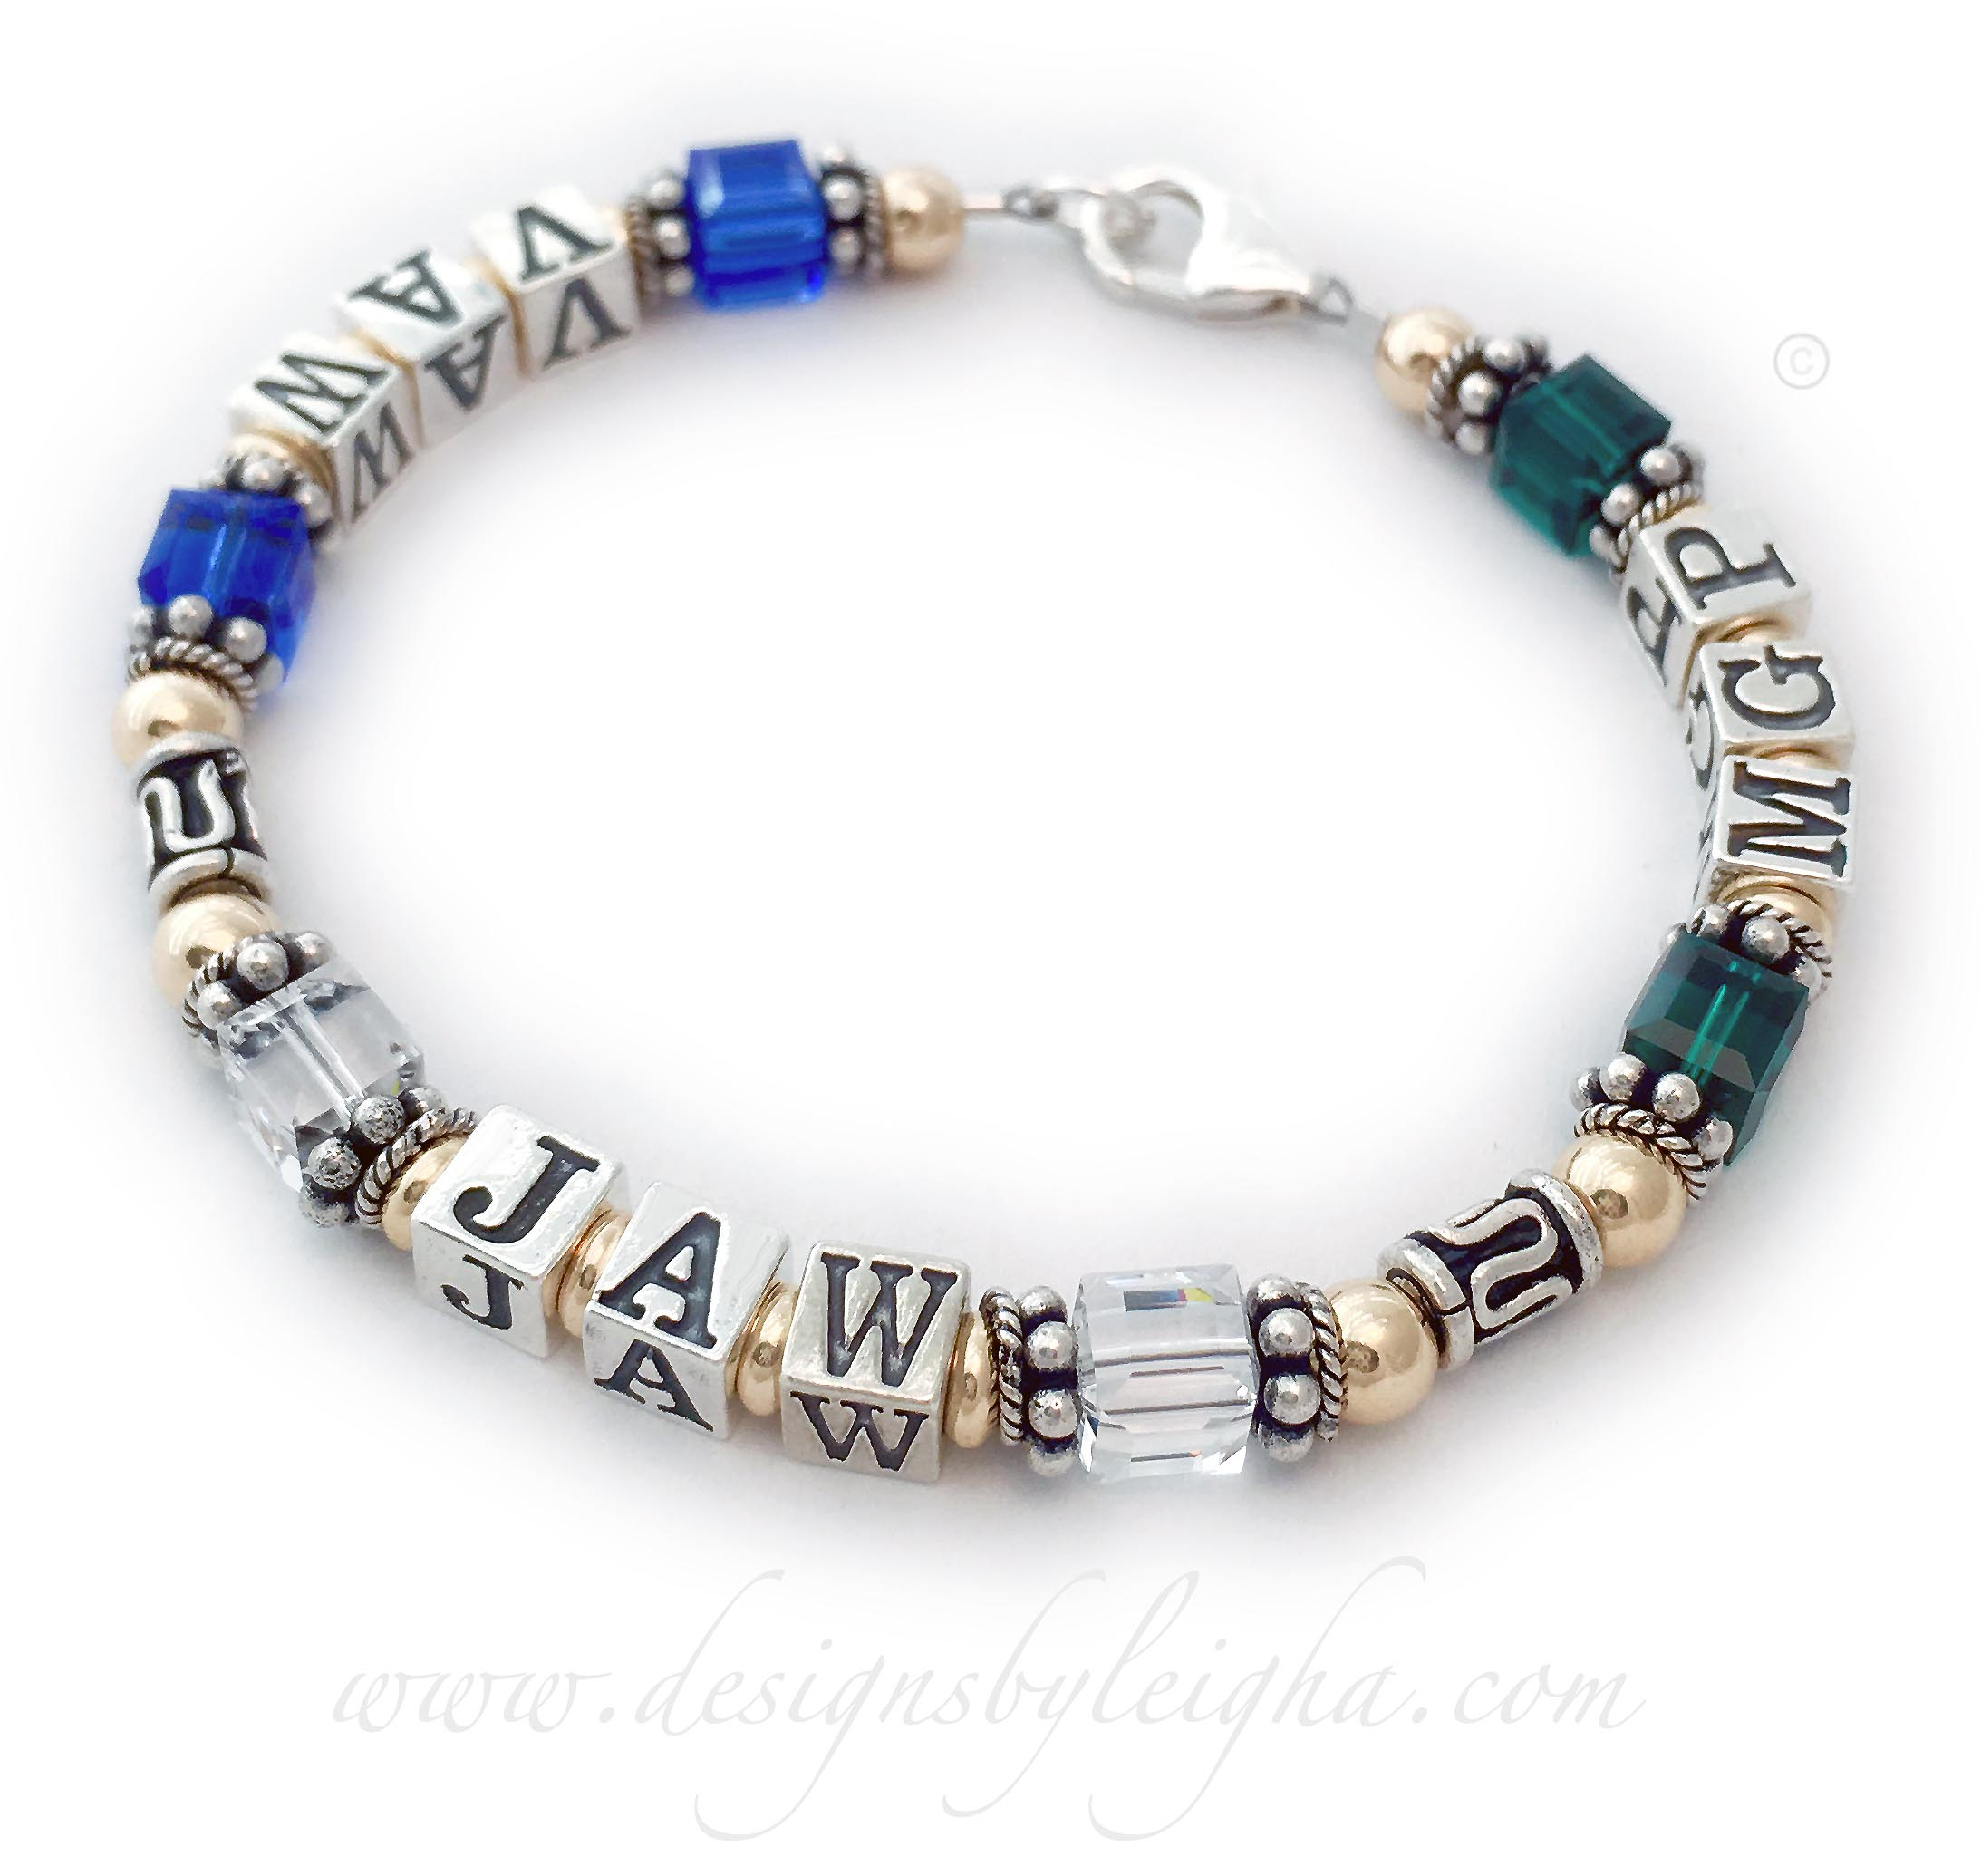 This Gold Monogram Bracelet is shown with 3 kids' monograms and their birthstones on a 1-string bracelet.